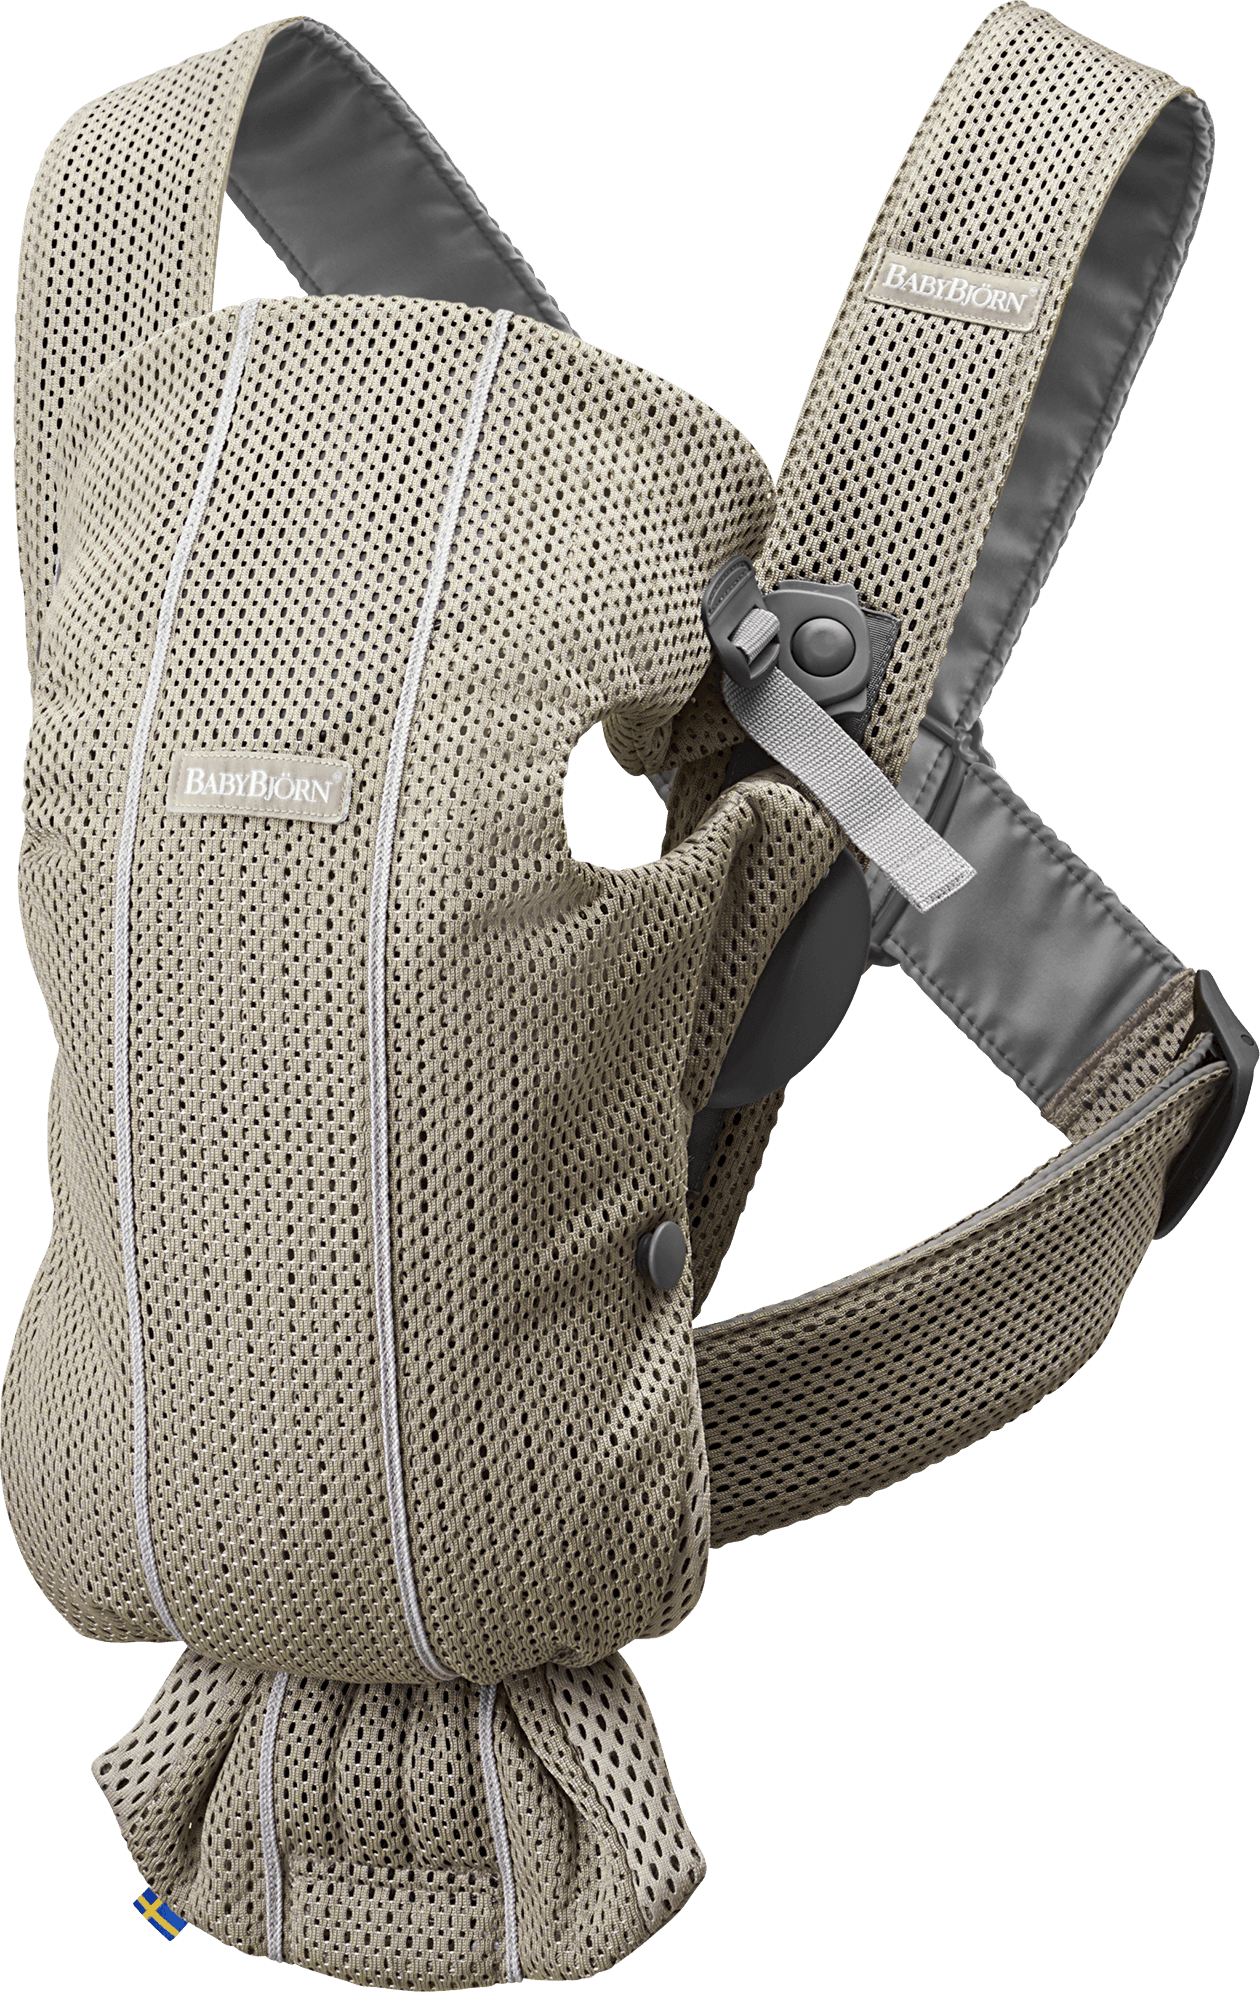 c7188ed8cc5 Baby Carrier Mini – perfect for a newborn